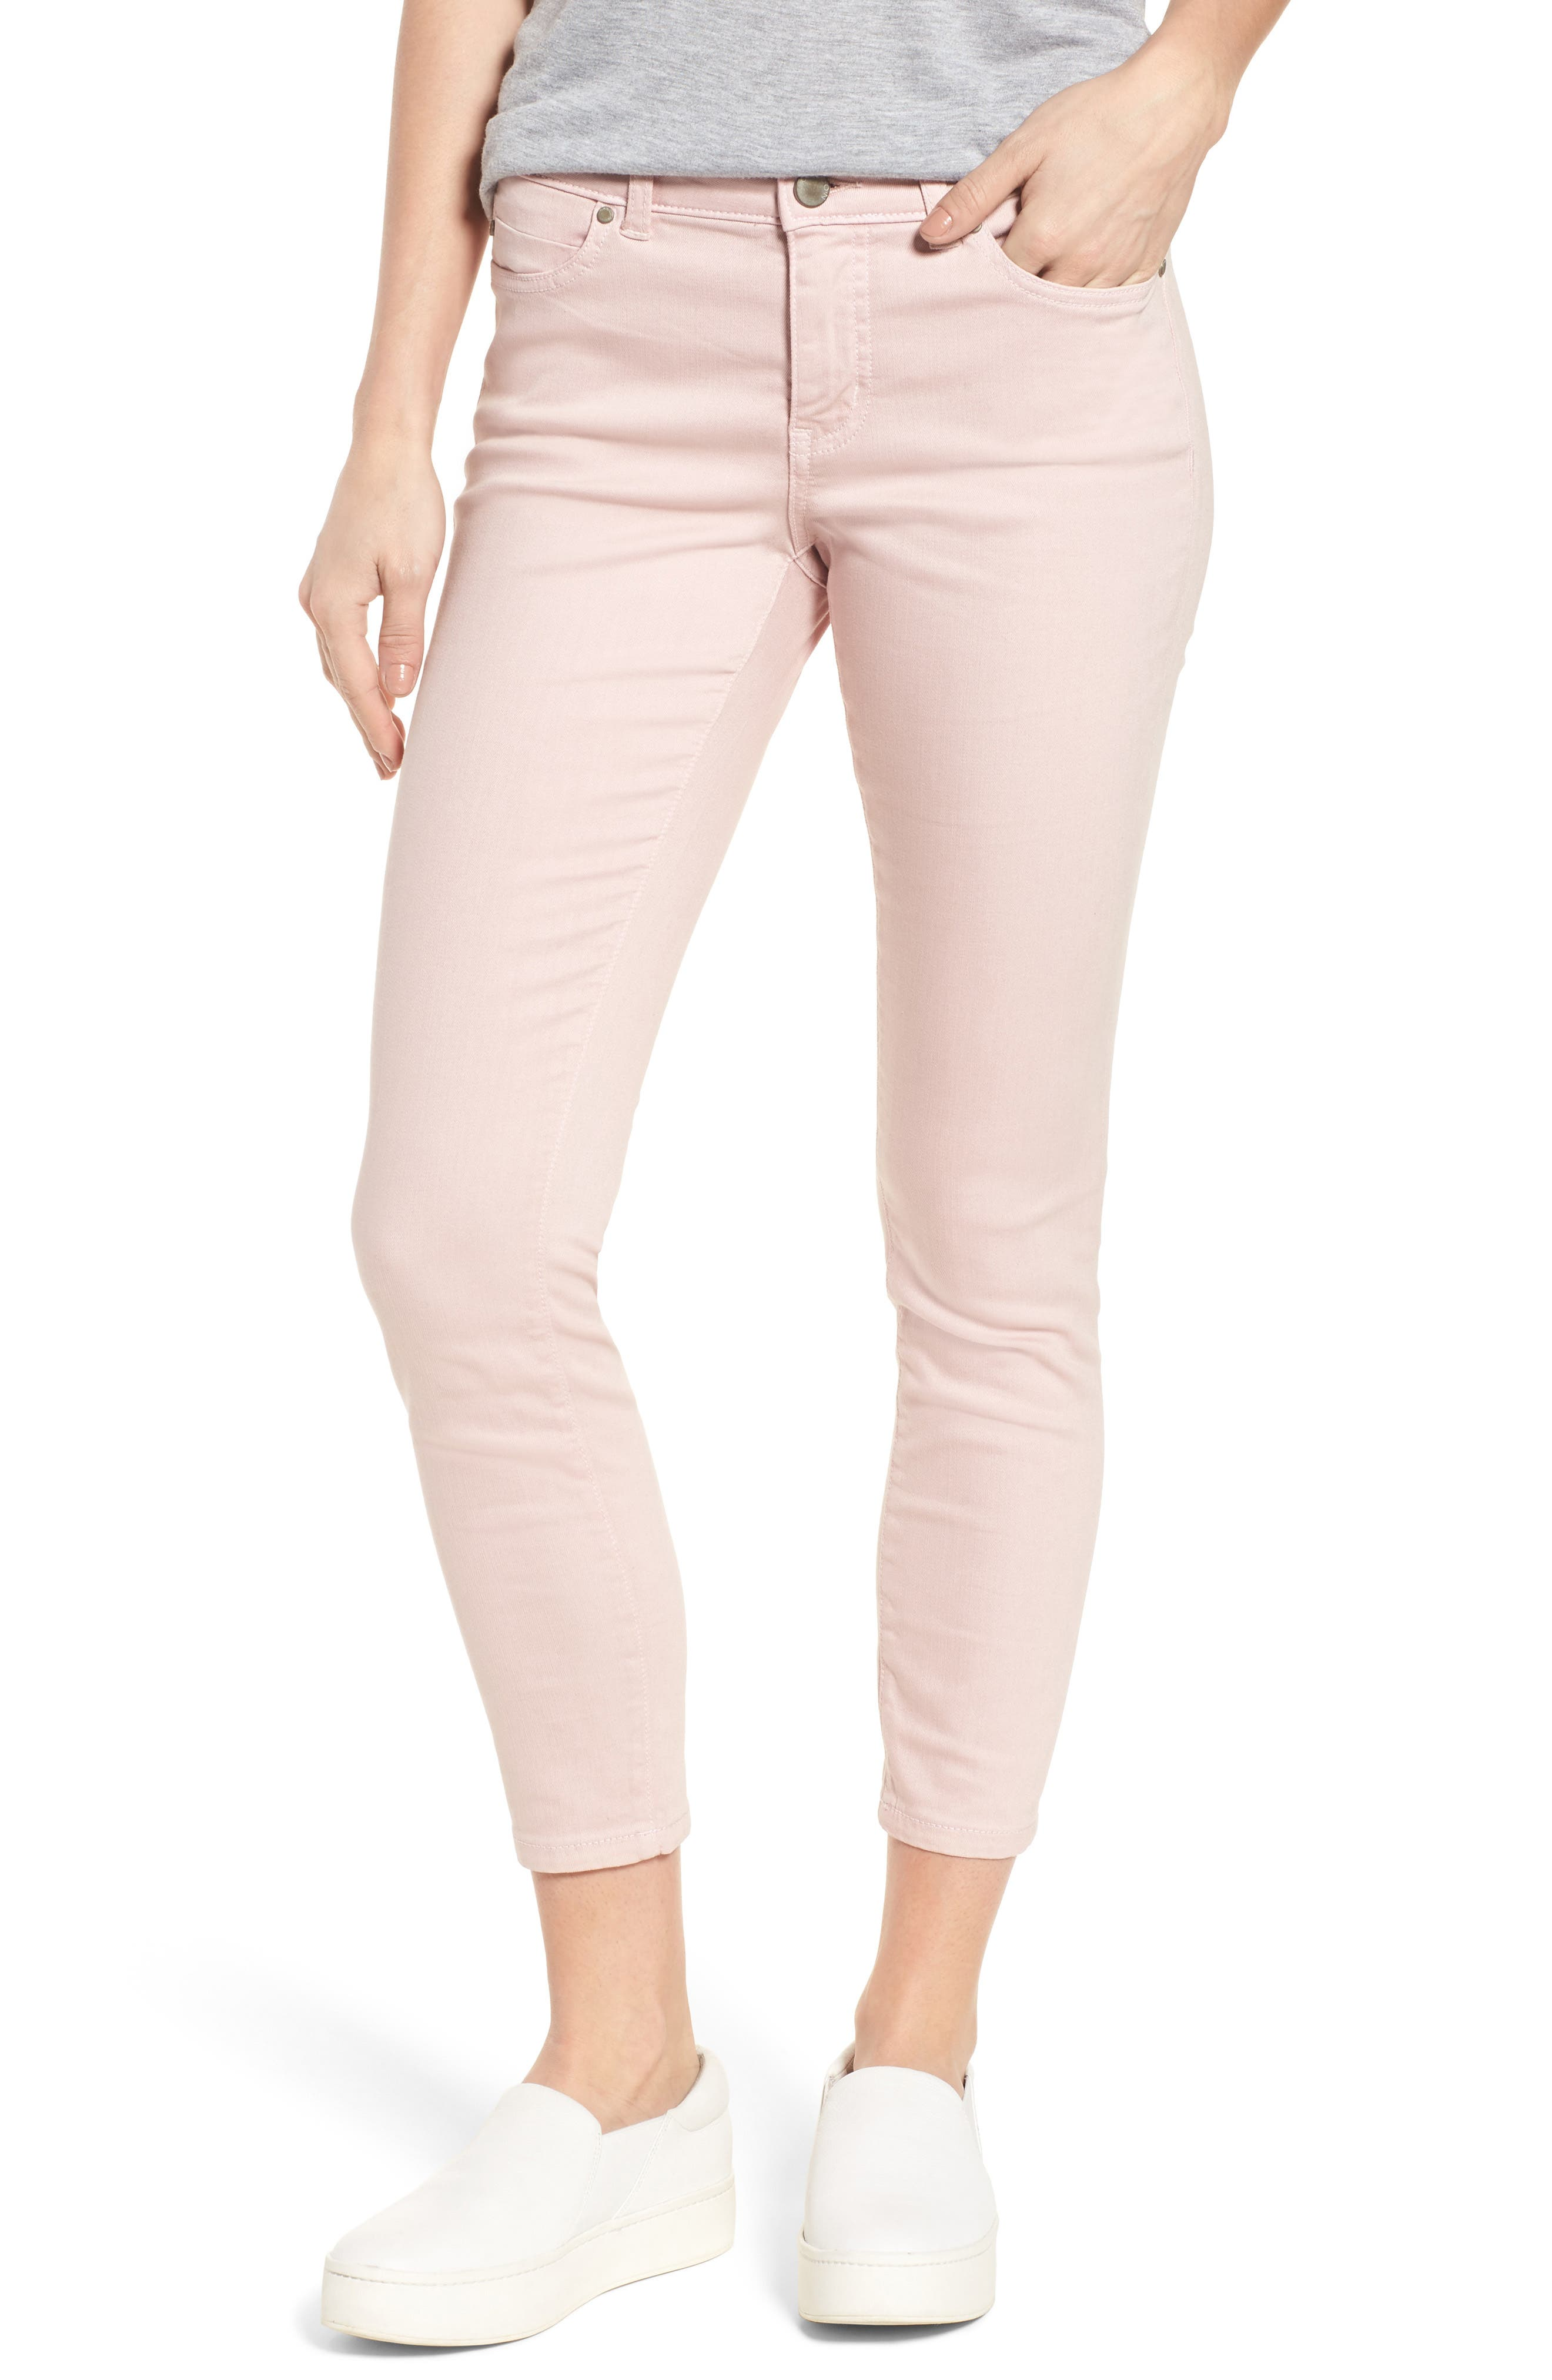 Alternate Image 1 Selected - Caslon® Skinny Ankle Jeans (Regular & Petite)